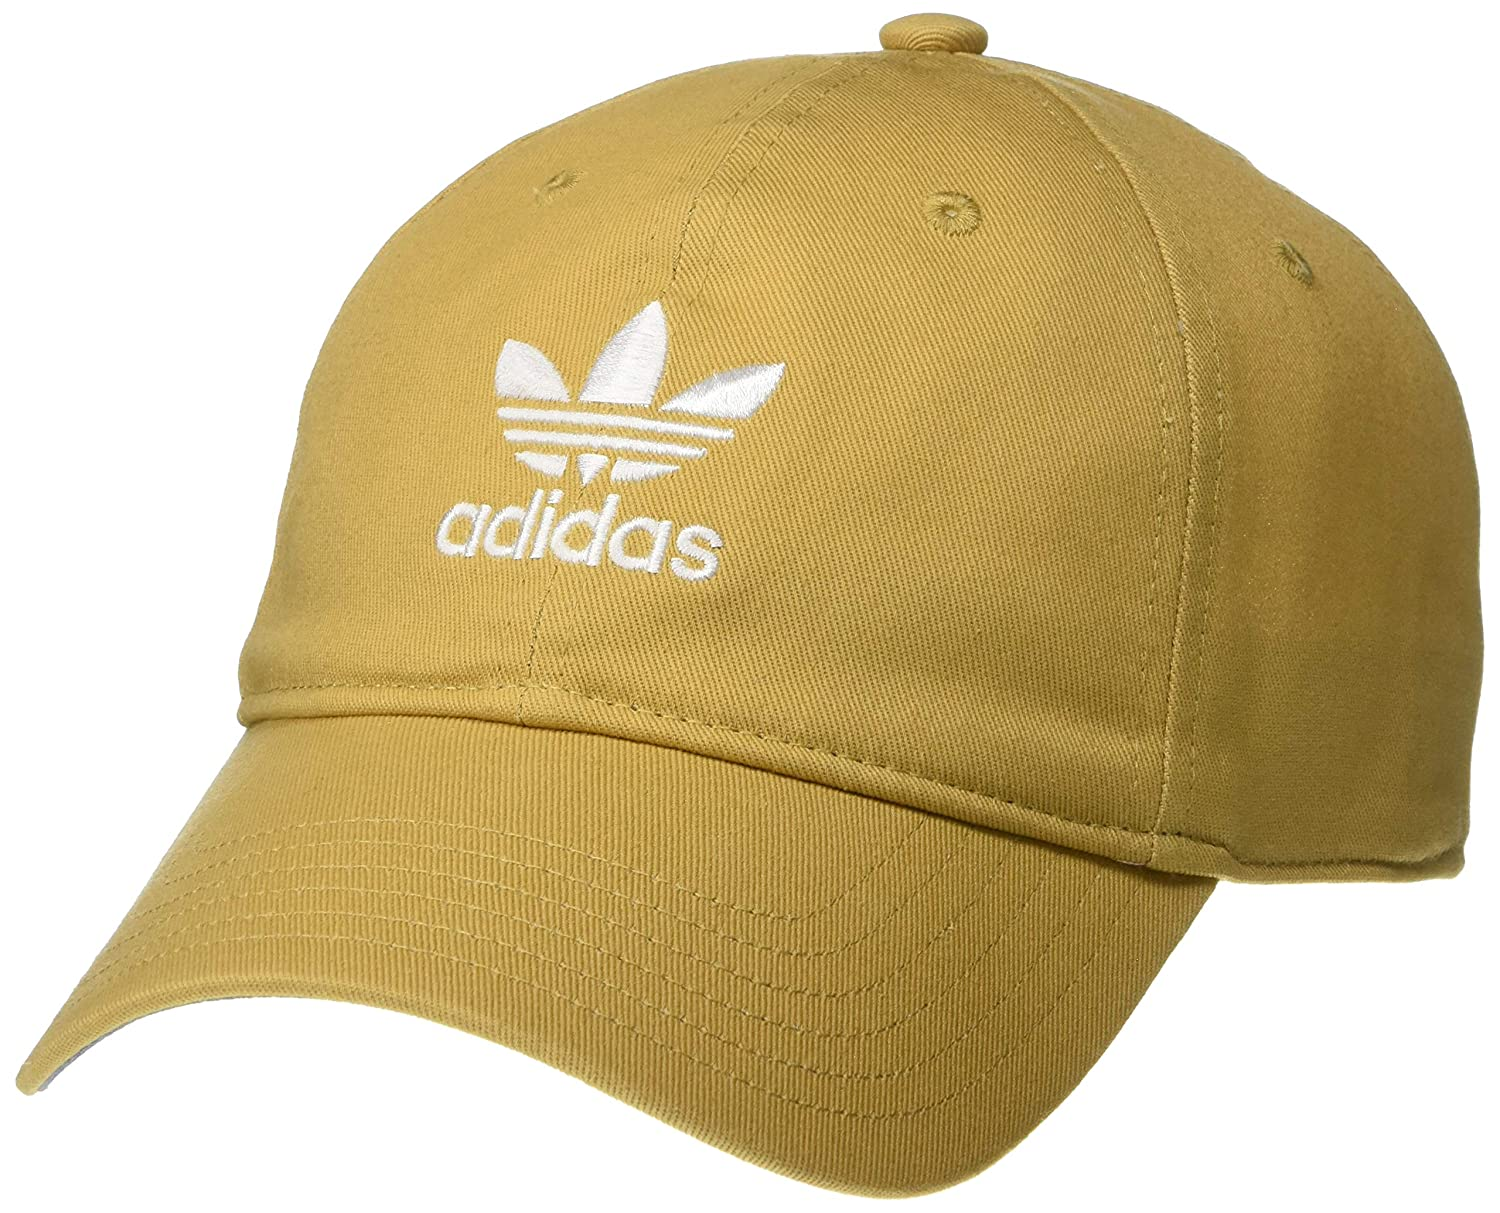 354096a484b Amazon.com  adidas Men s Originals Relaxed Strapback Cap